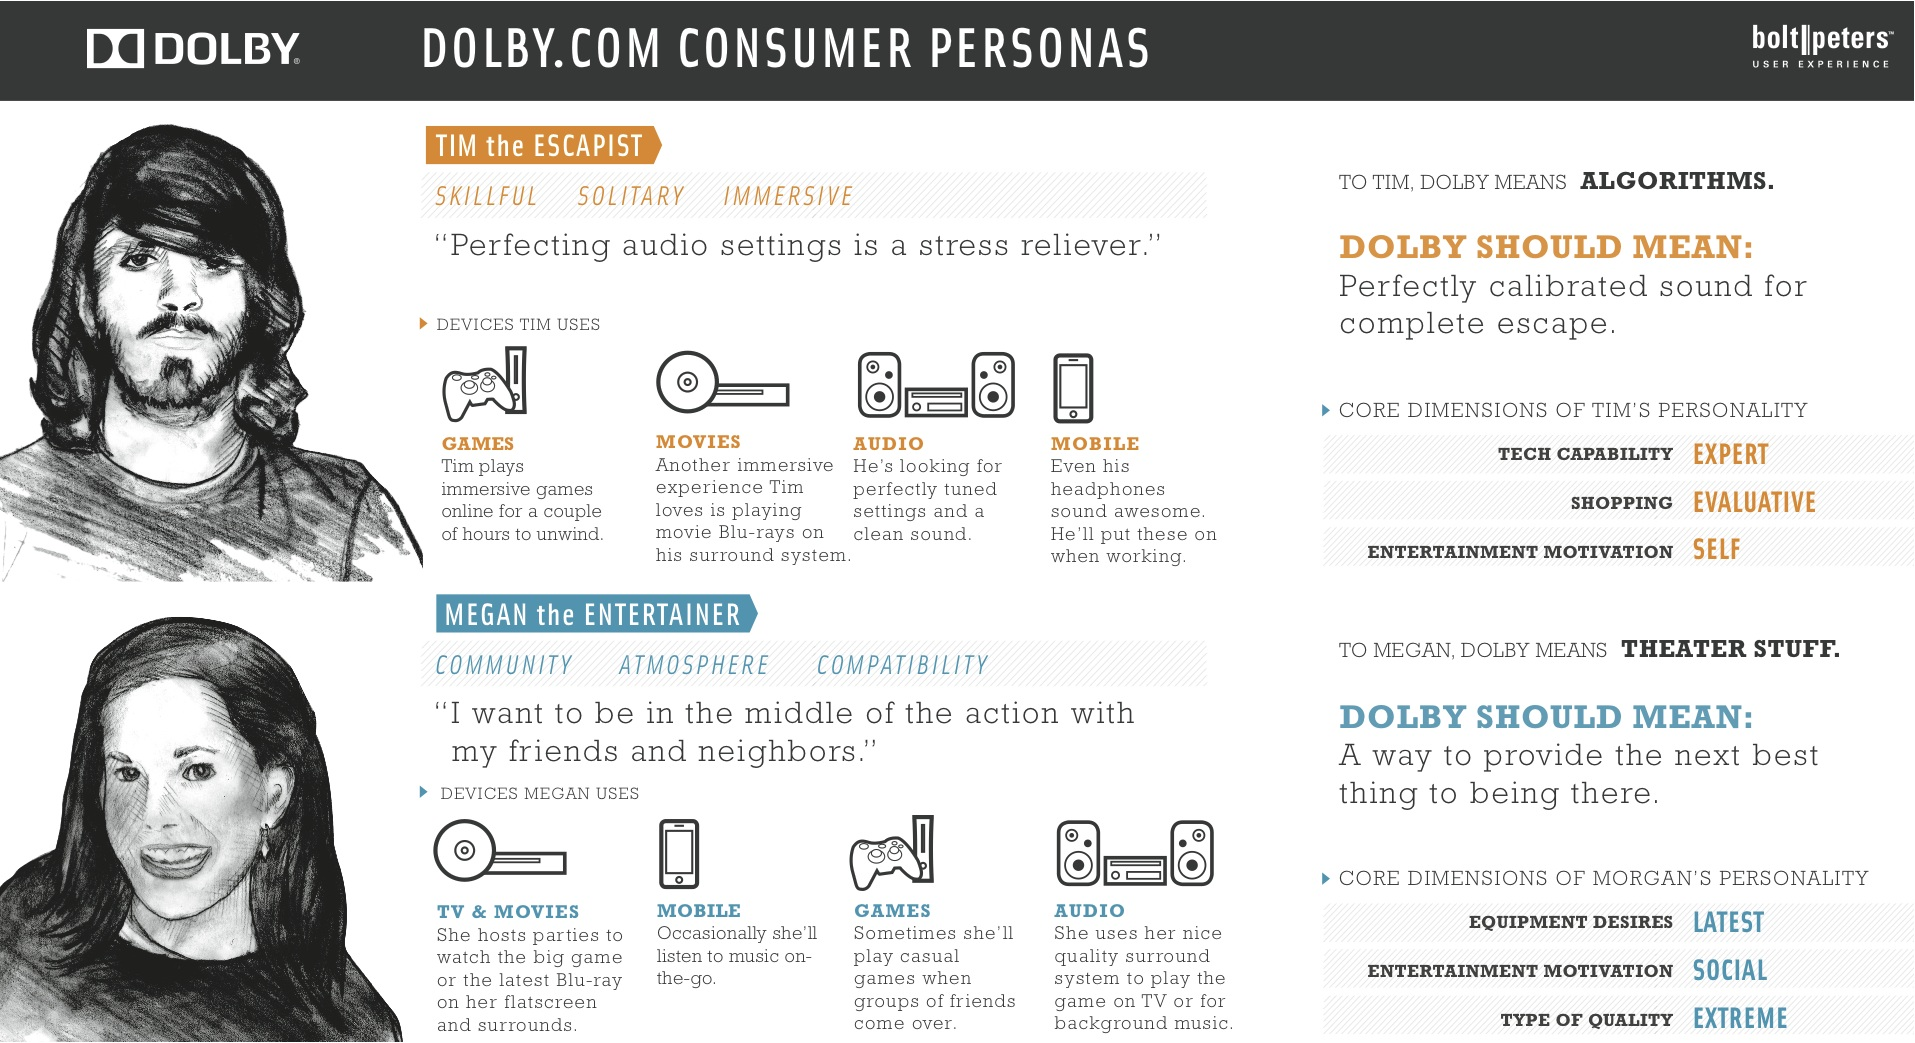 More here: http://boltpeters.com/clients/dolby/